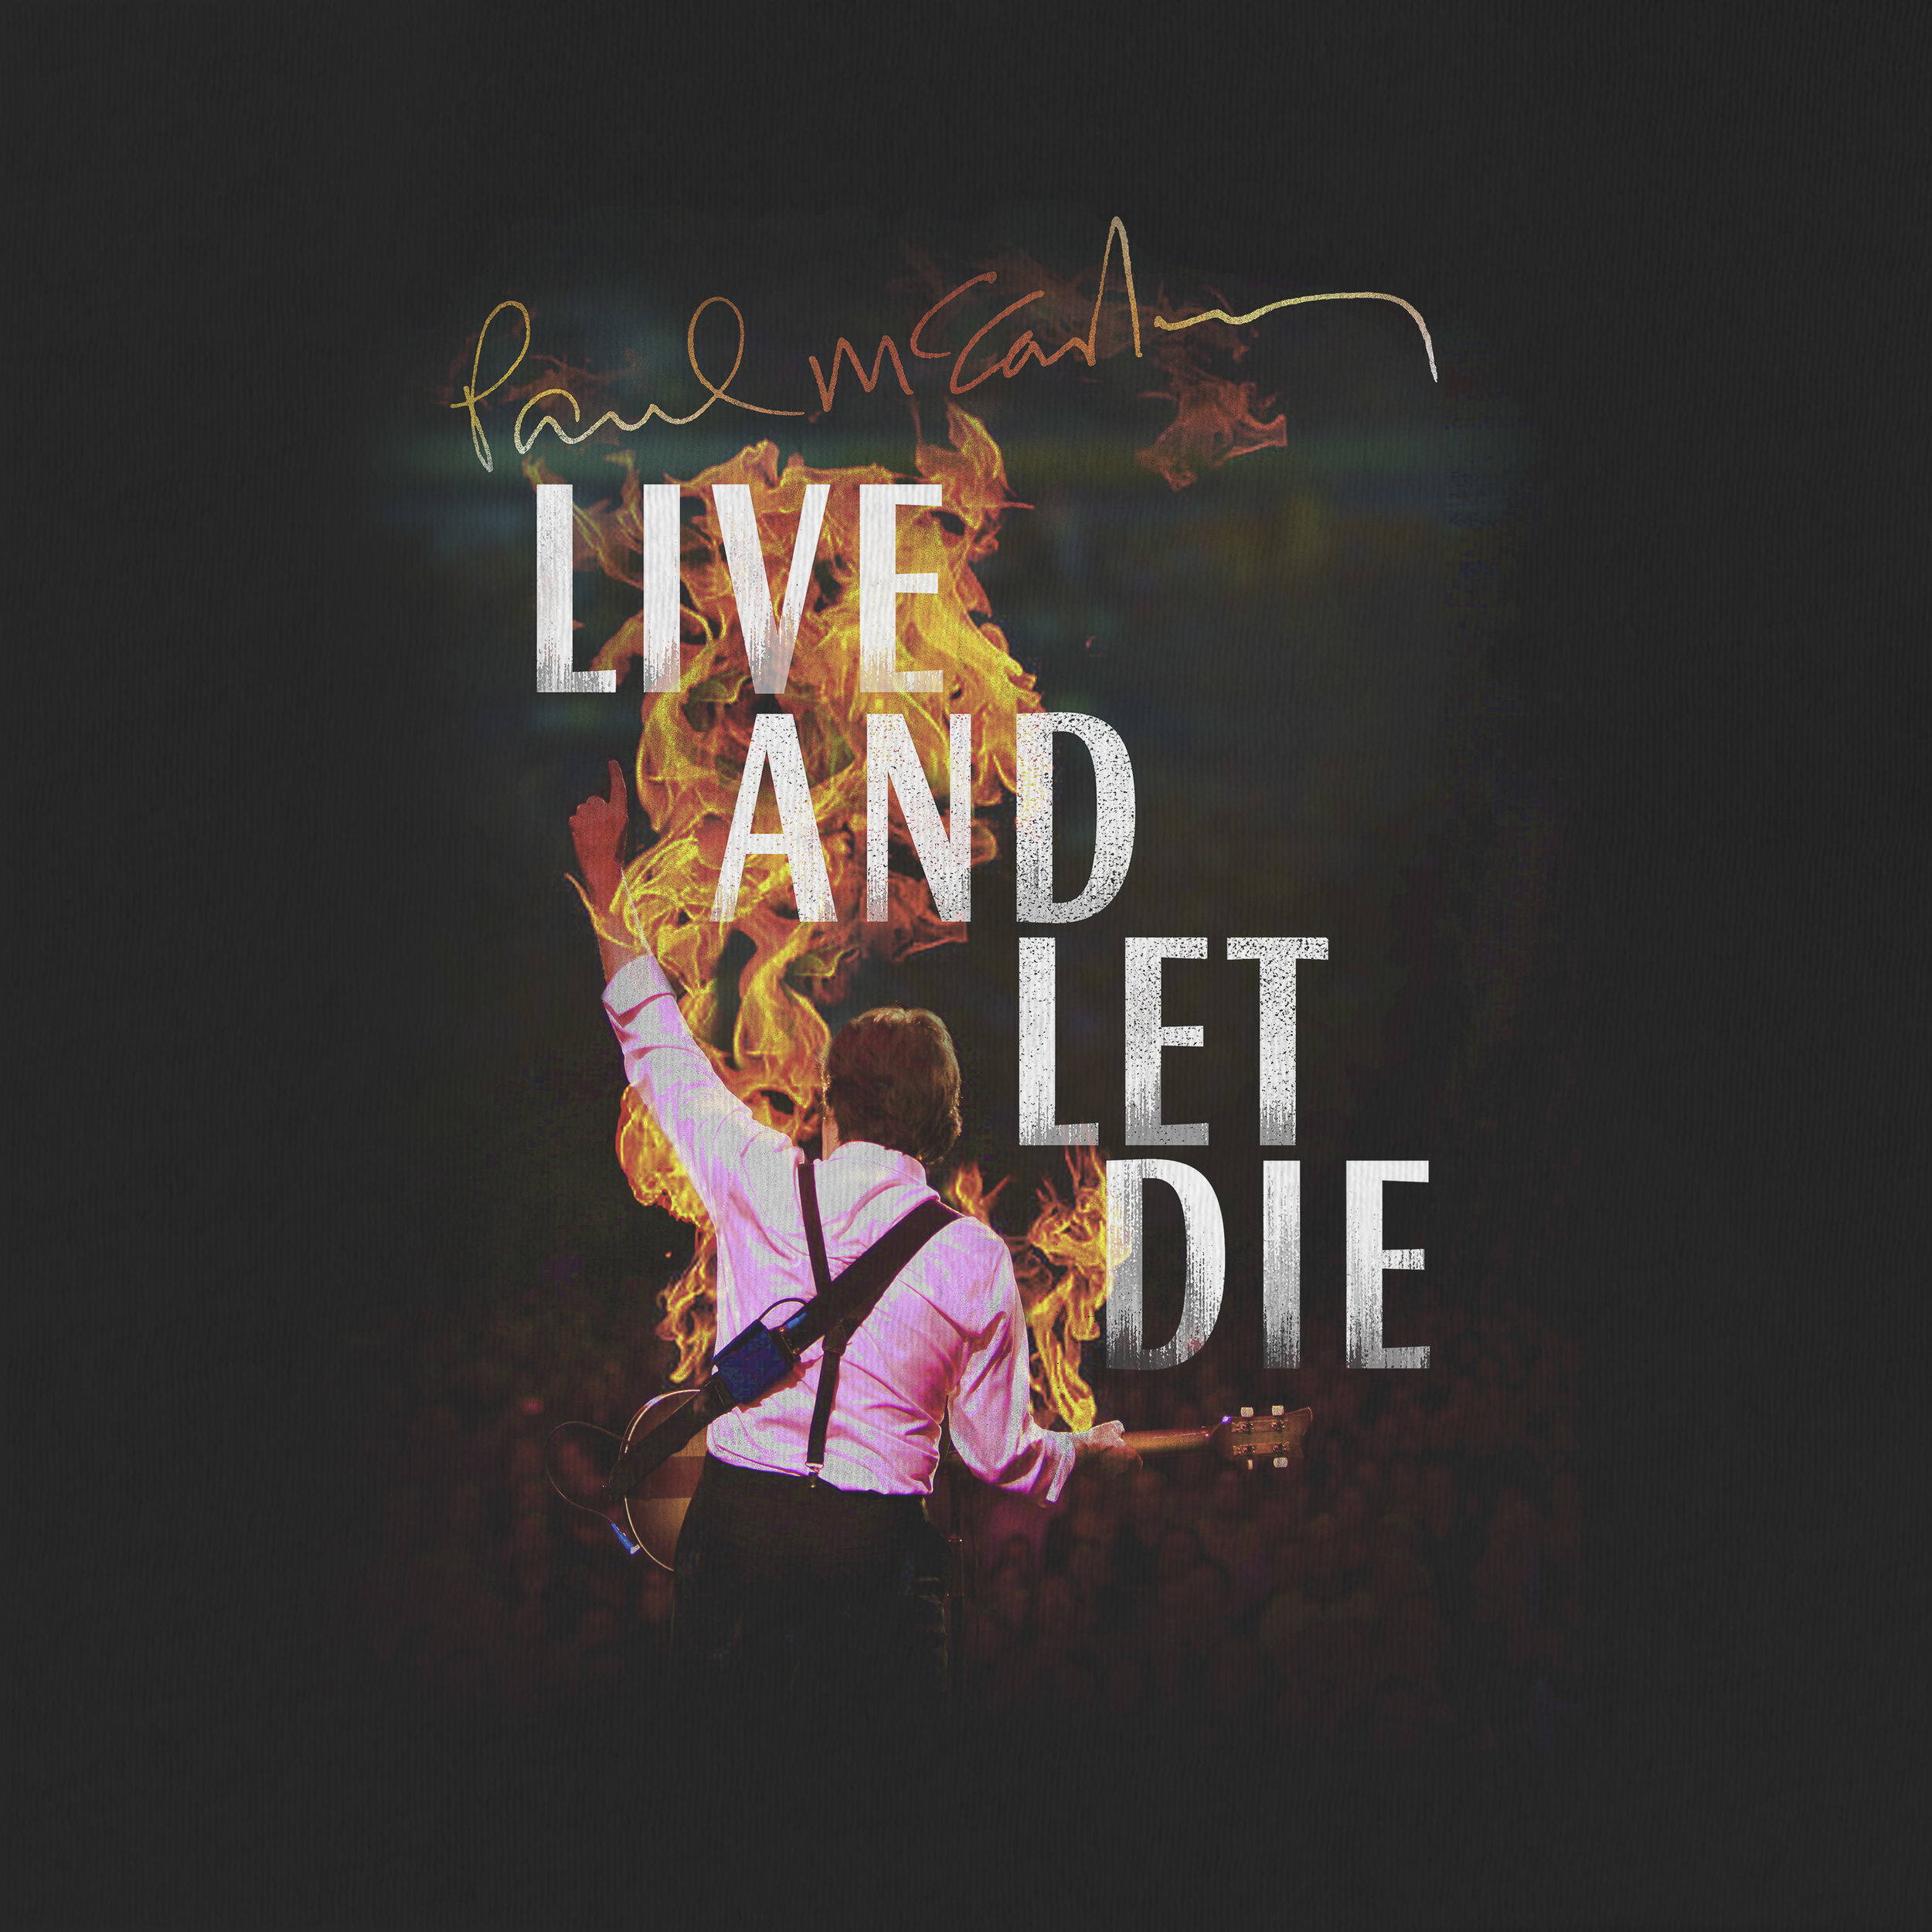 paul-mccartney-live-and-let-die.jpg